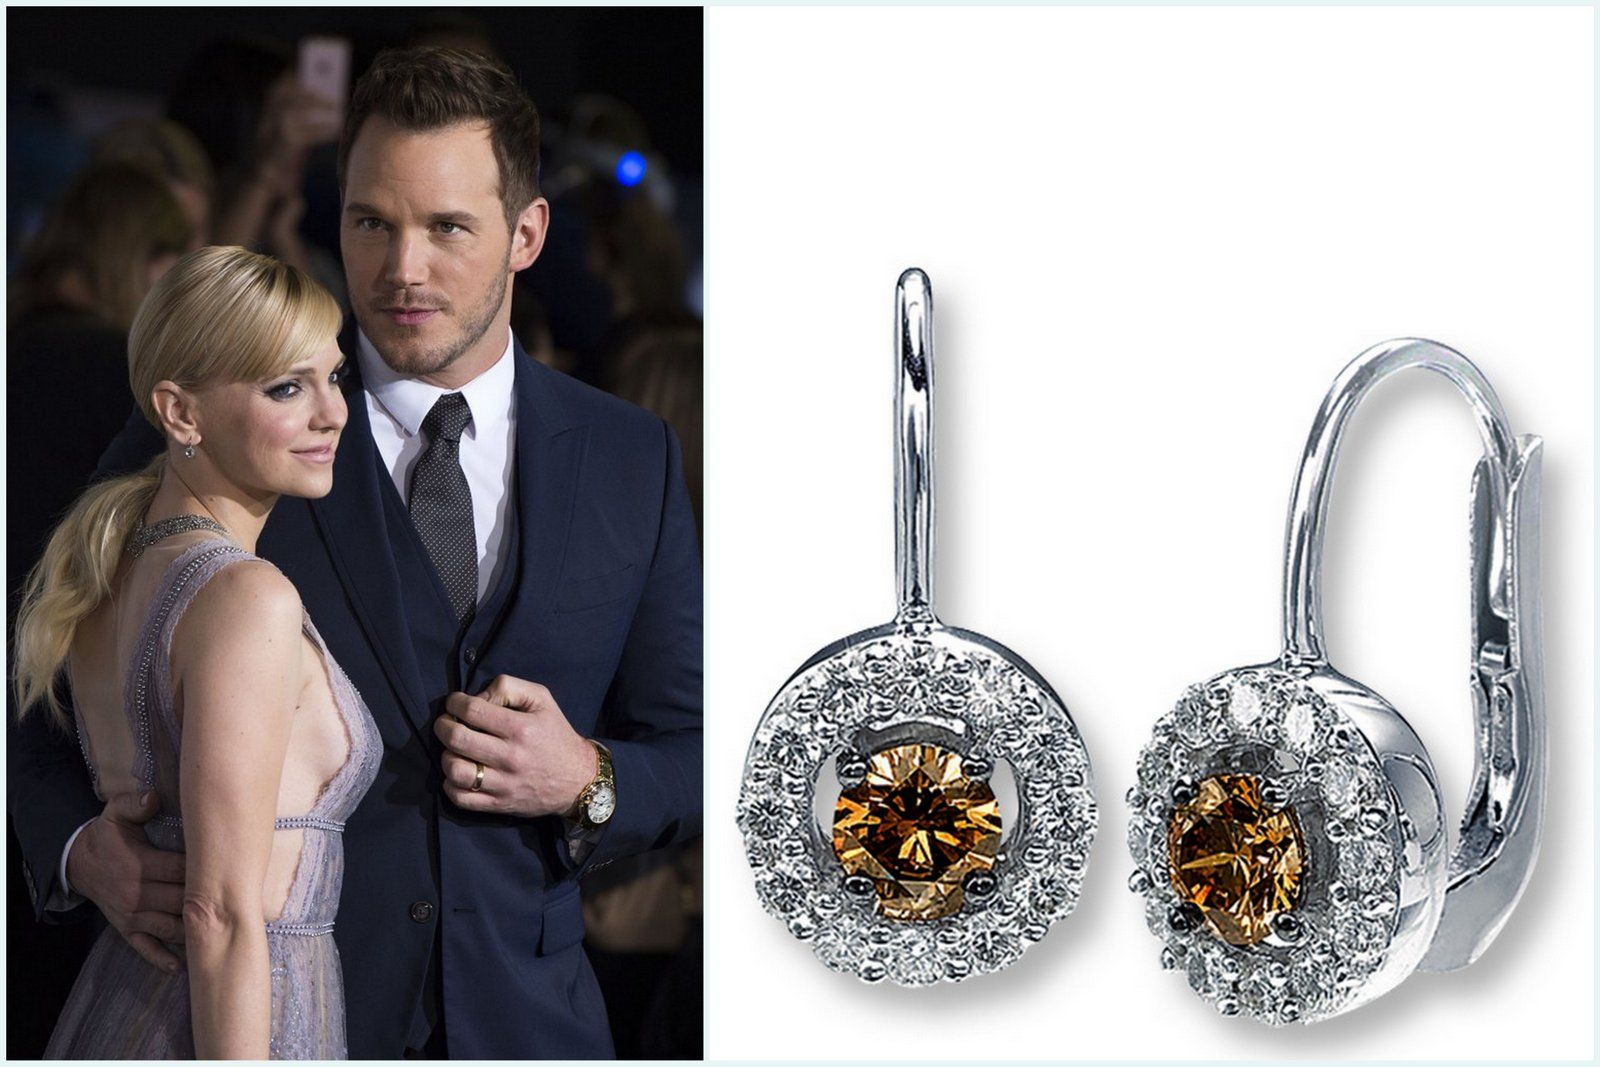 Anna Faris ChrisPatt jewelryLeVian